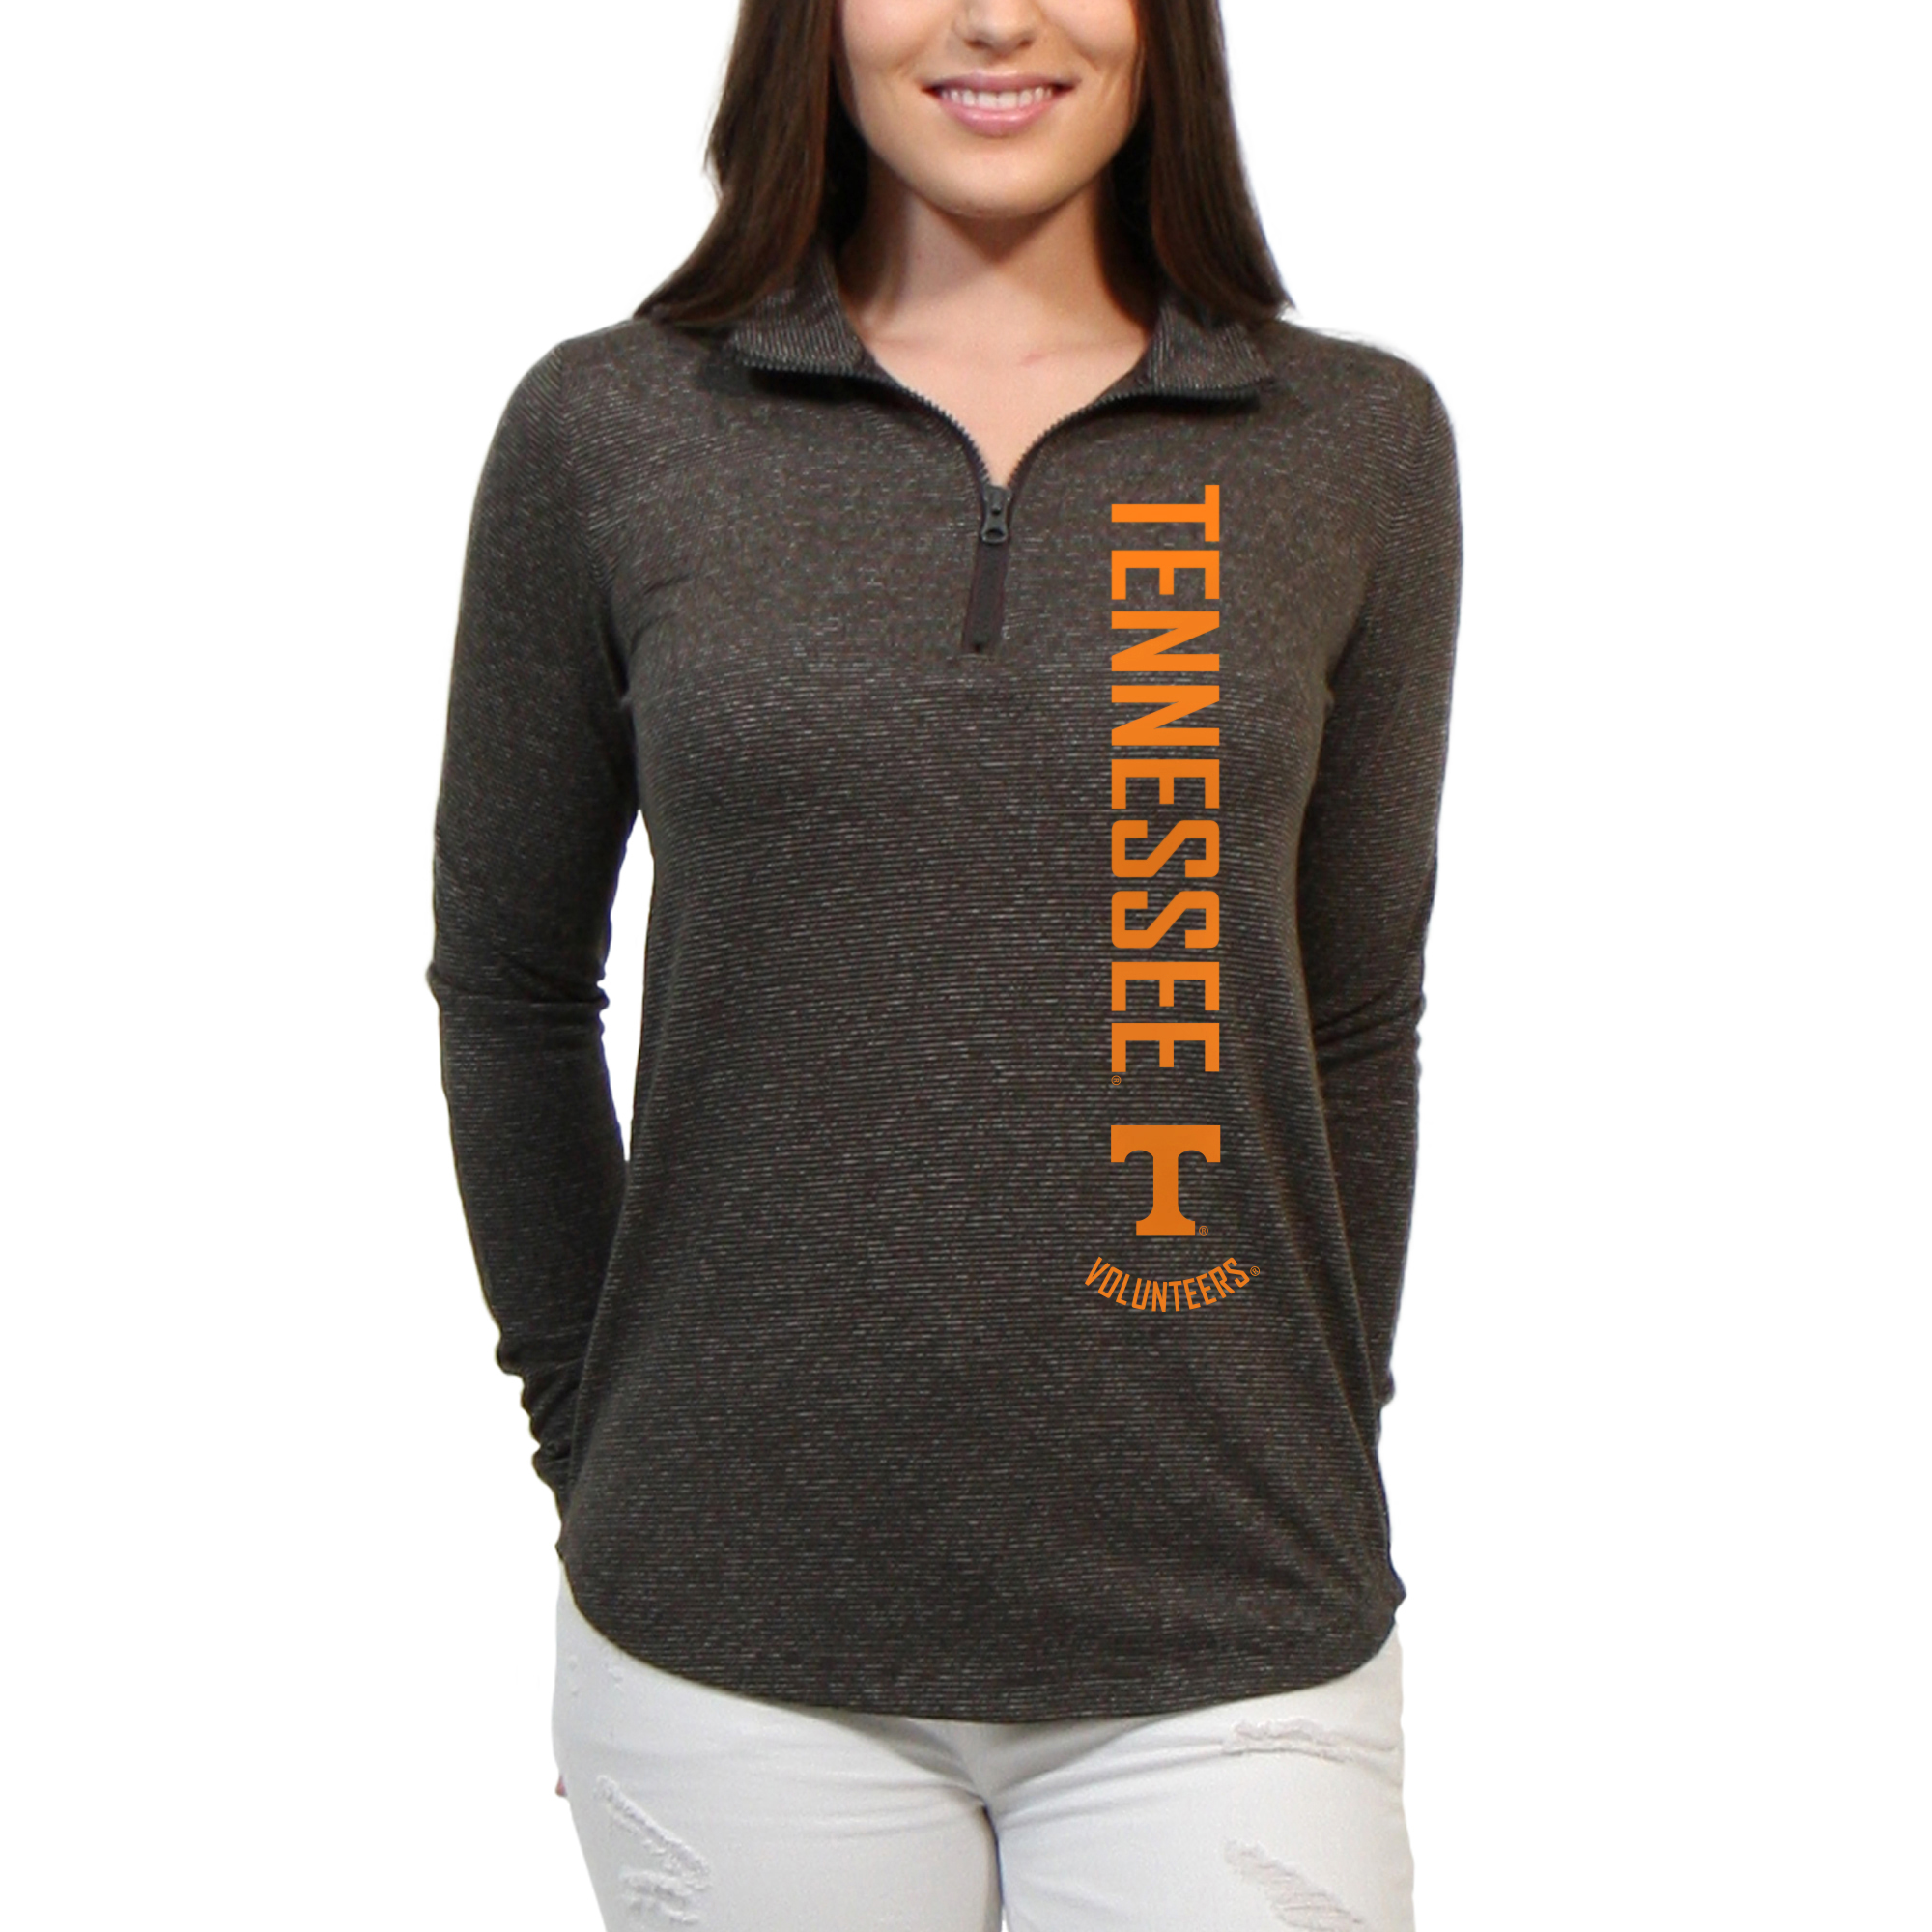 Tennessee Volunteers Cascade Text Women's/Juniors Team Long Sleeve Half Zip Shirt